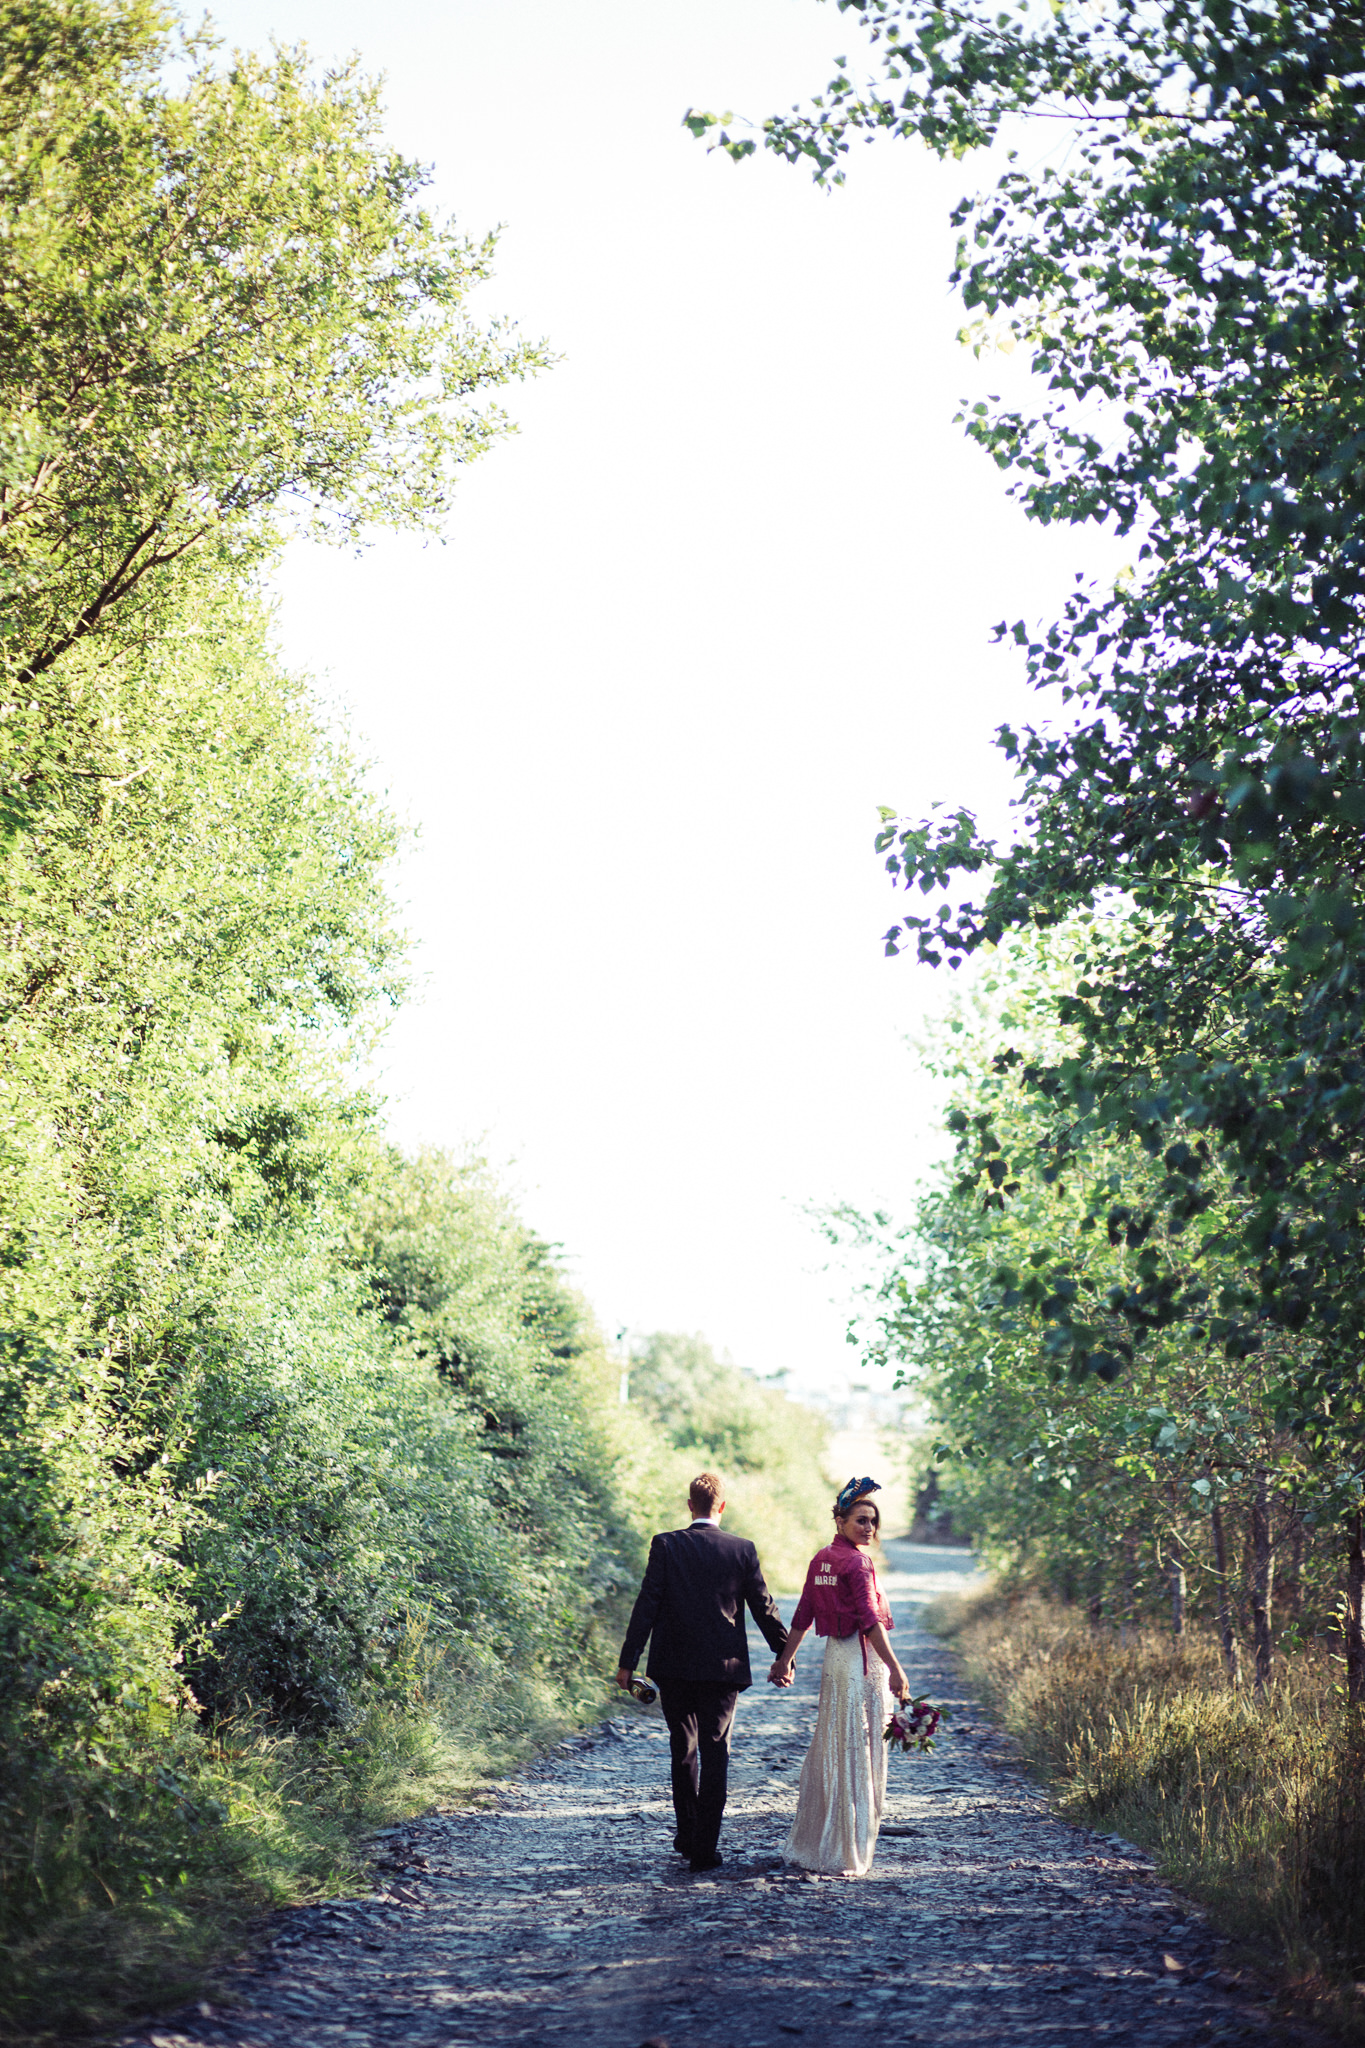 Couple on country road | Image courtesy of Adj Brown